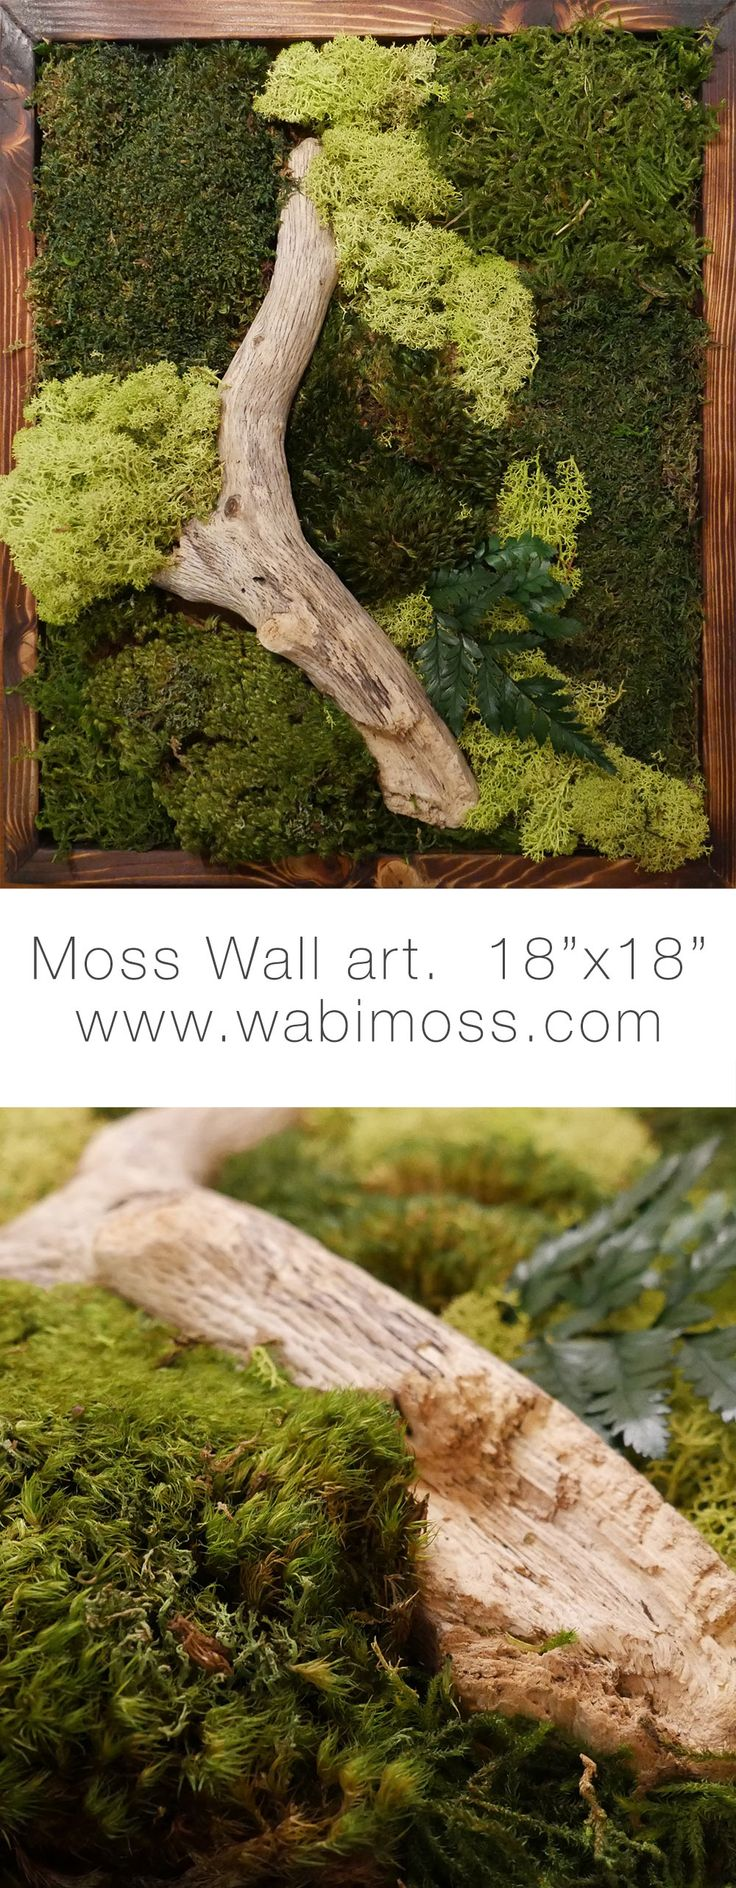 Moss wall art from wabimoss.com. Bring nature indoors with this green wall. The beautiful moss artwork will freshen any space.